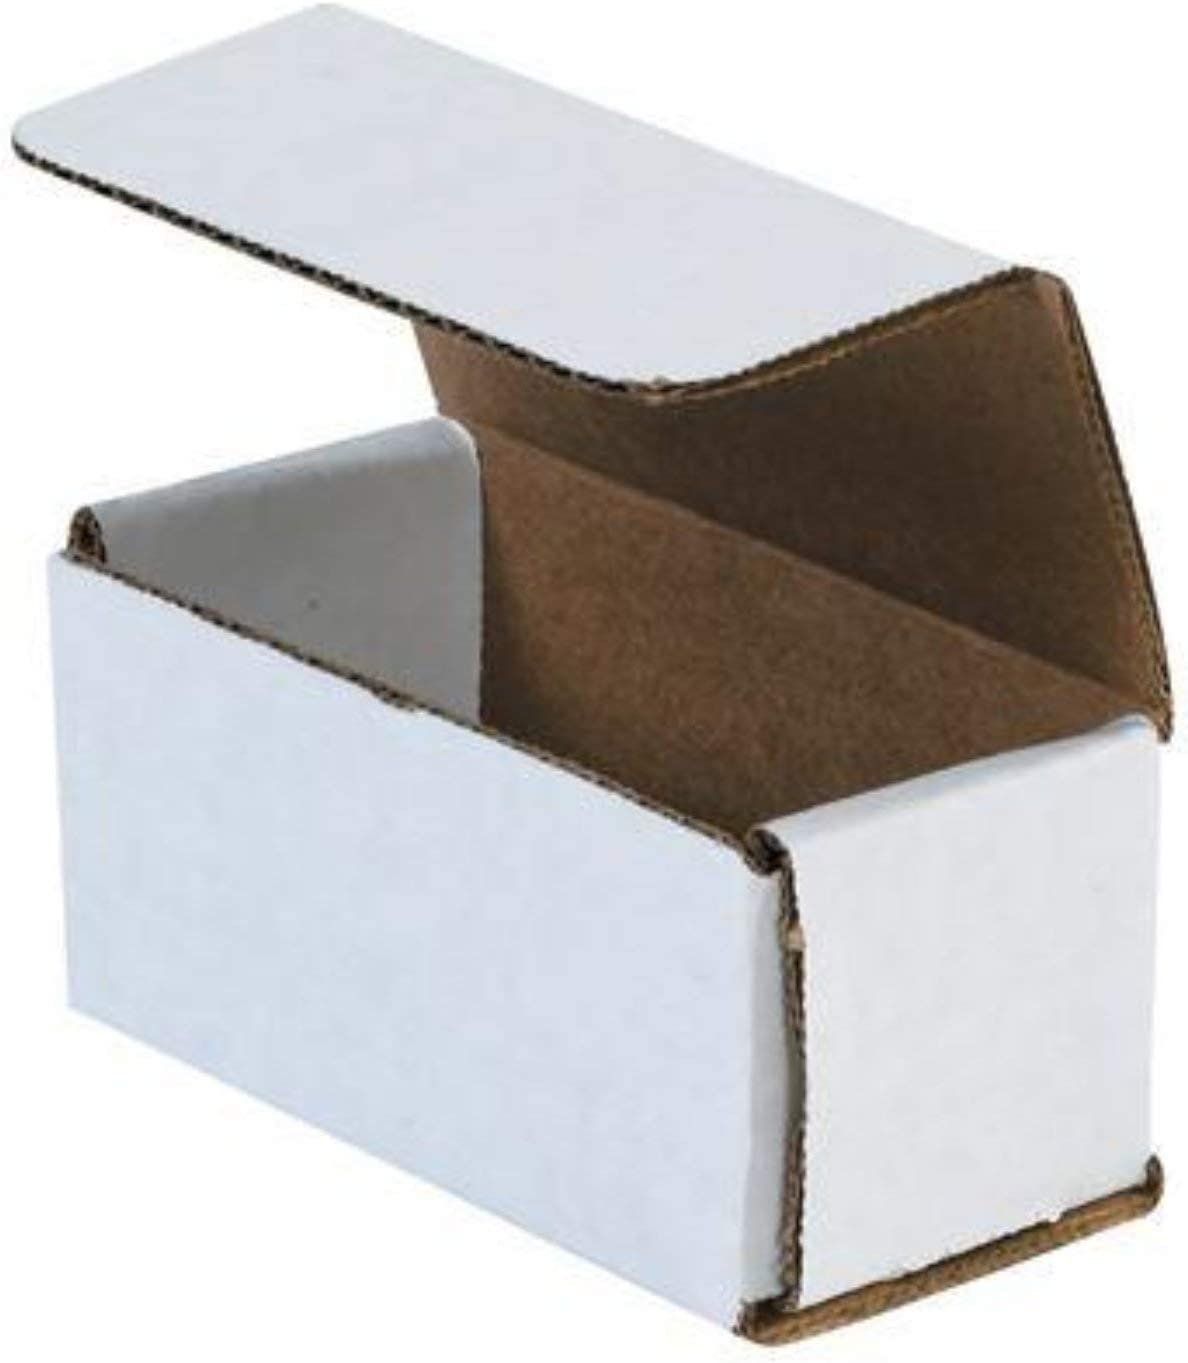 4x2x2 White Corrugated Shipping Mailer o Boxes Max 52% OFF Ultra-Cheap Deals Packing Box Pack